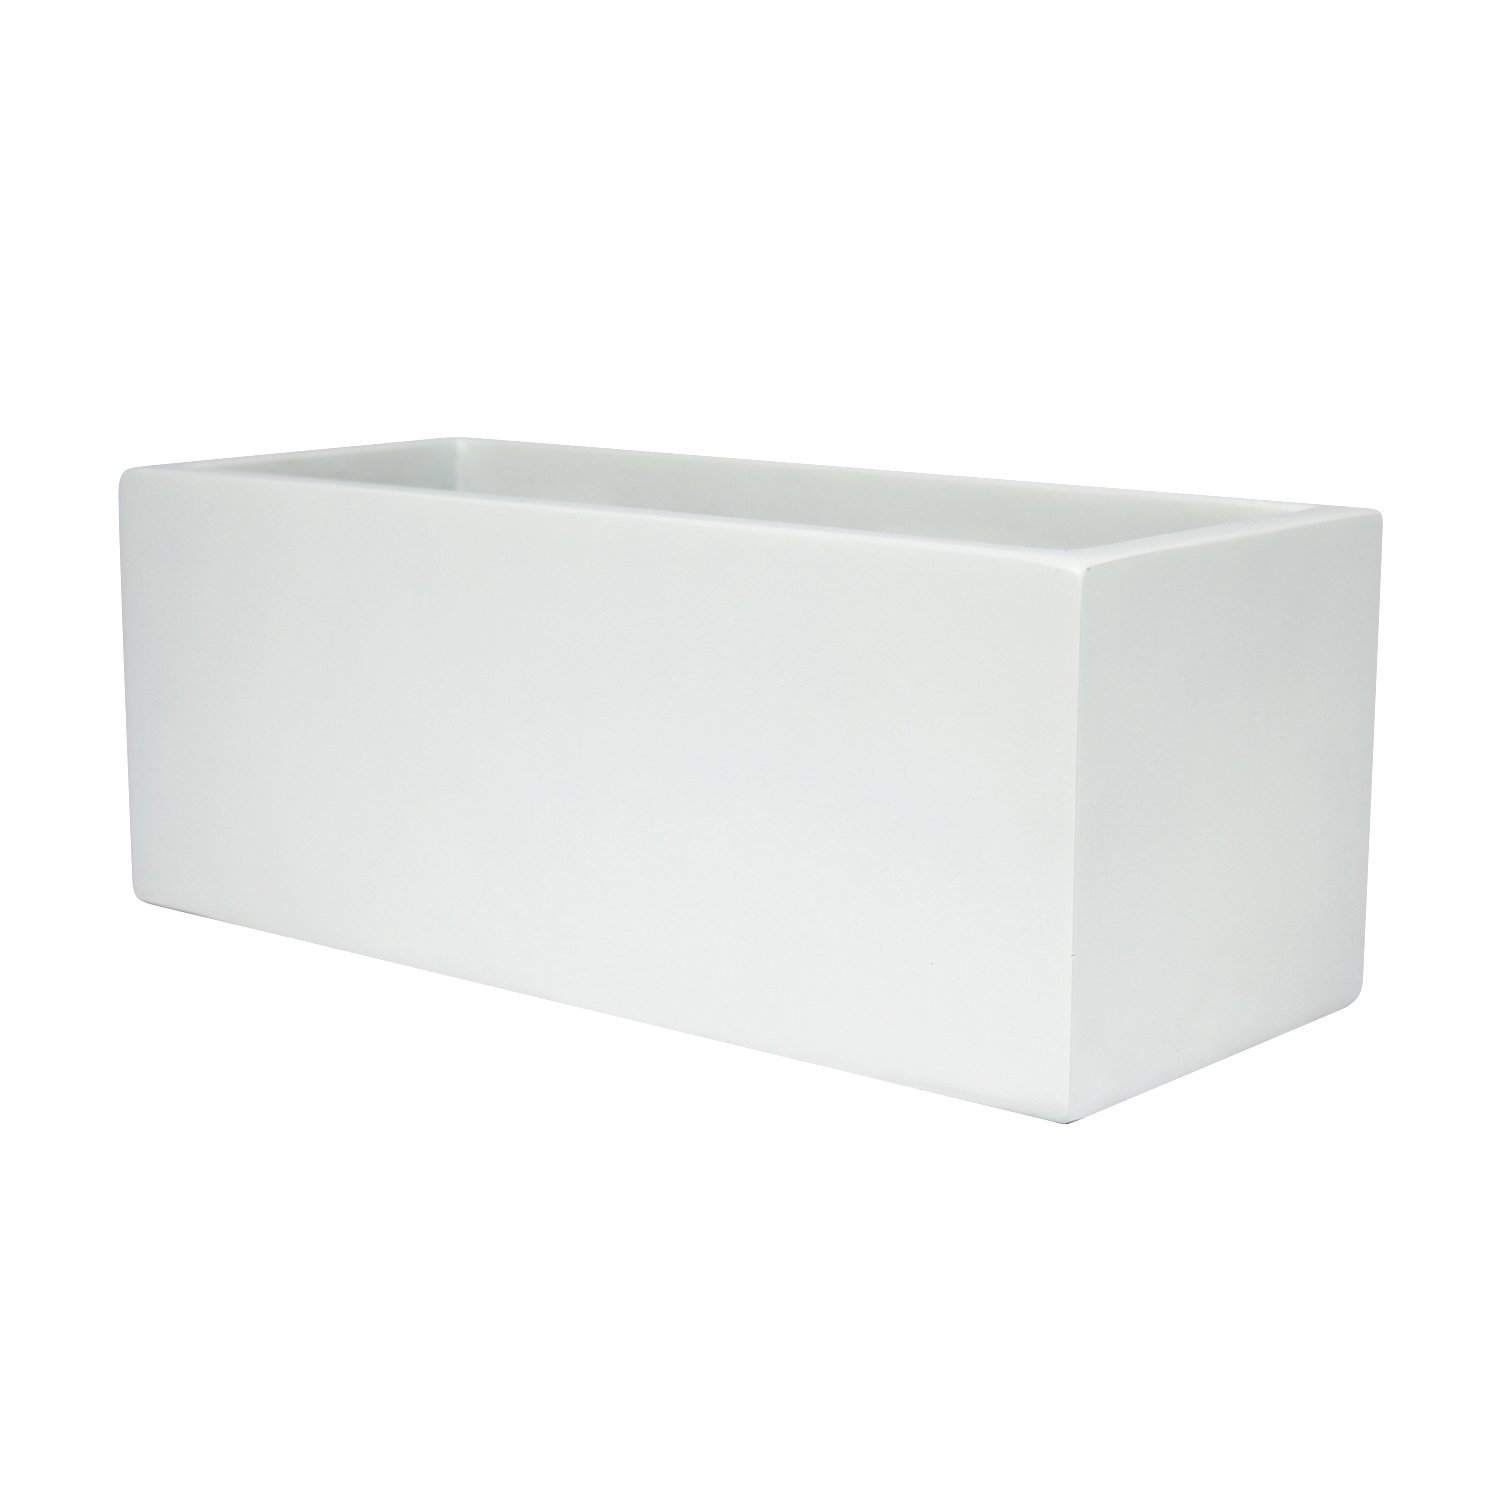 Brisbane Rectangle Fiberglass Planter Box L 48 x W 18 x H 20 , Matte White